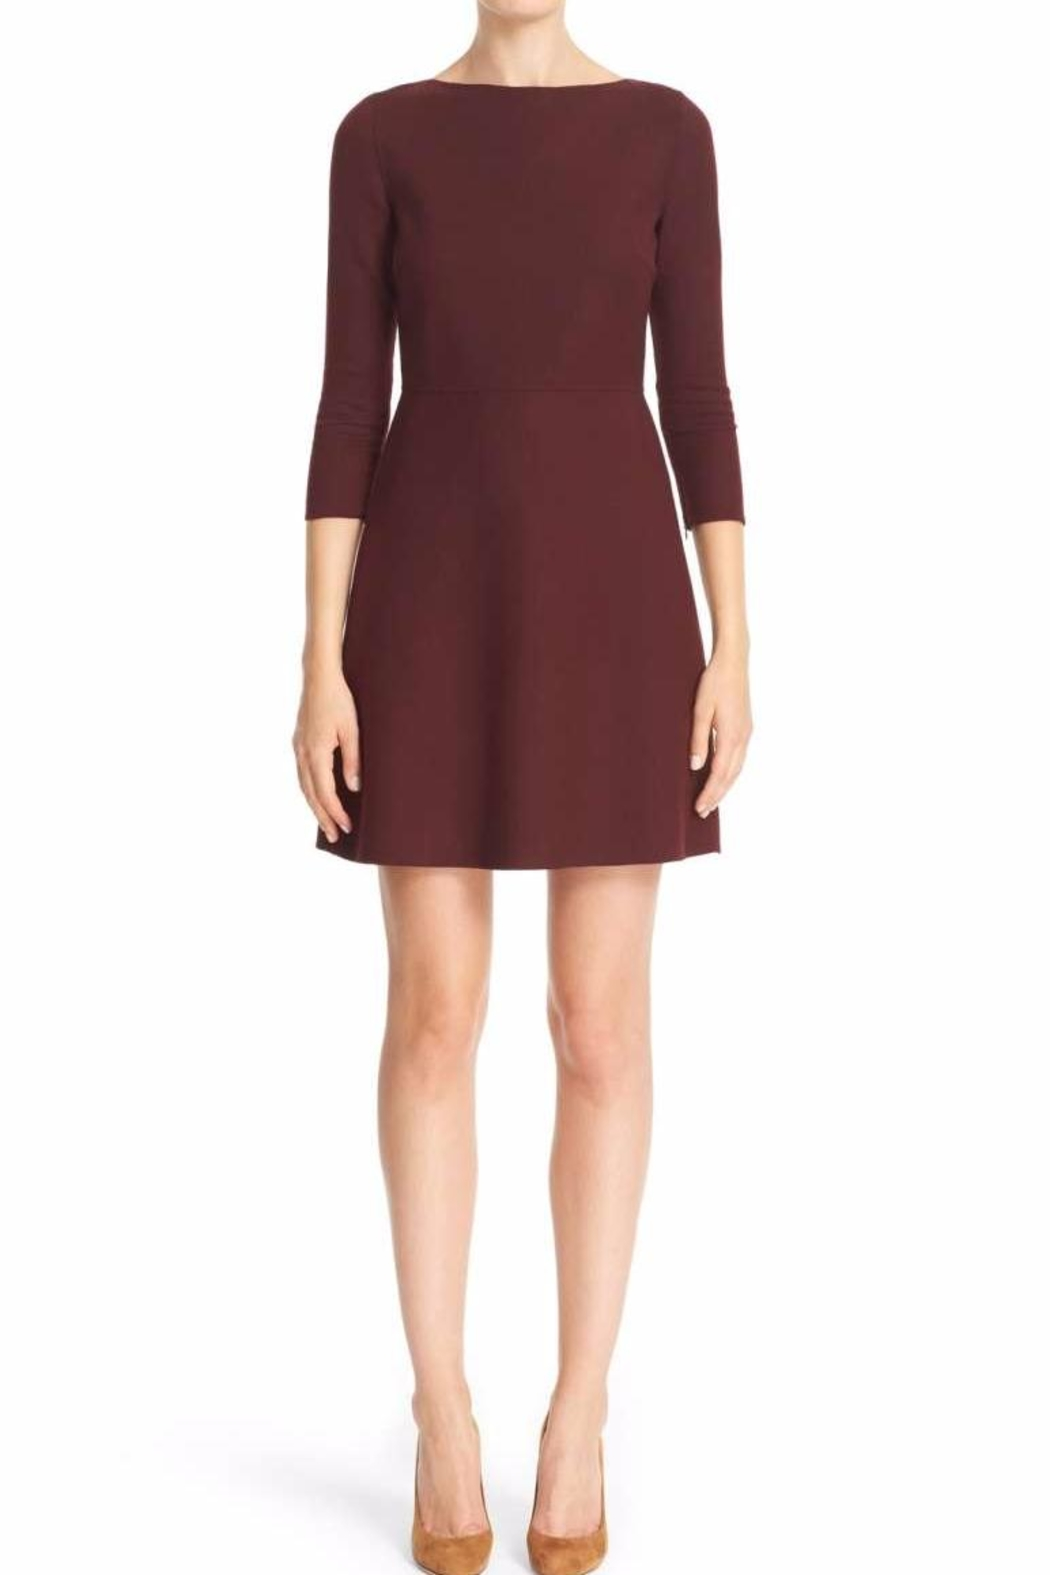 Theory Wine Colored Dress - Main Image